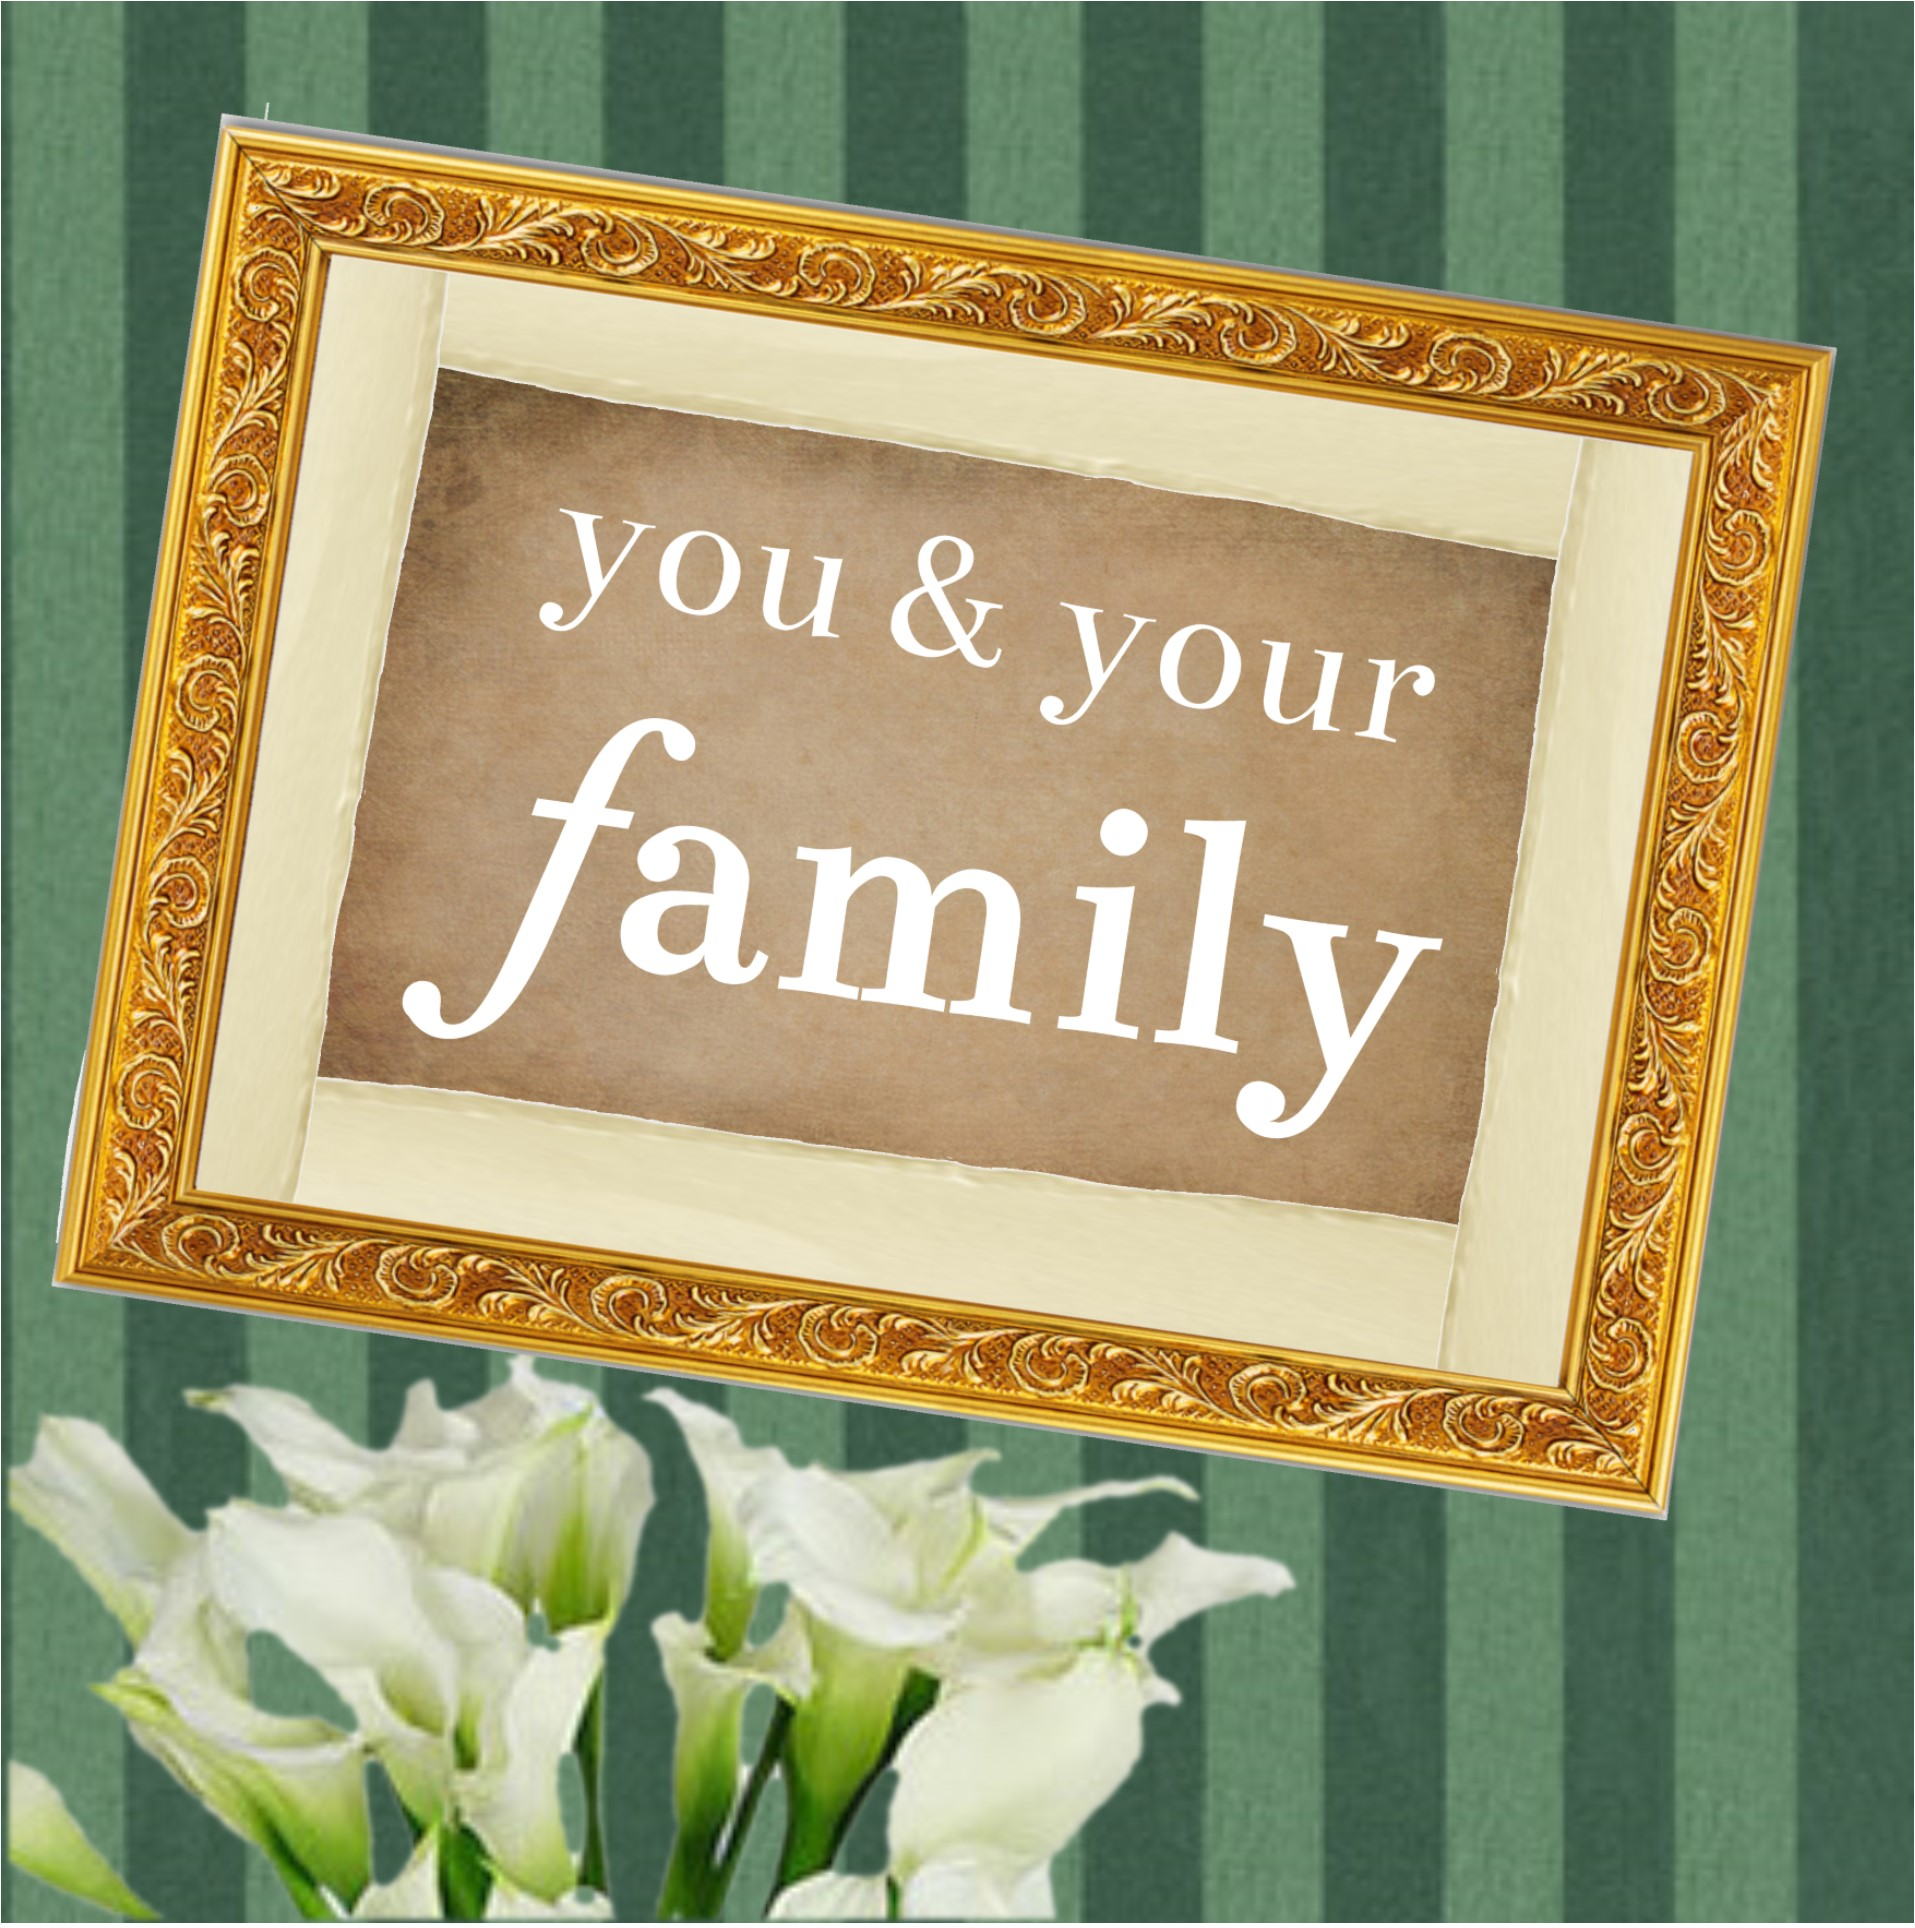 You and Your Family for web.jpg